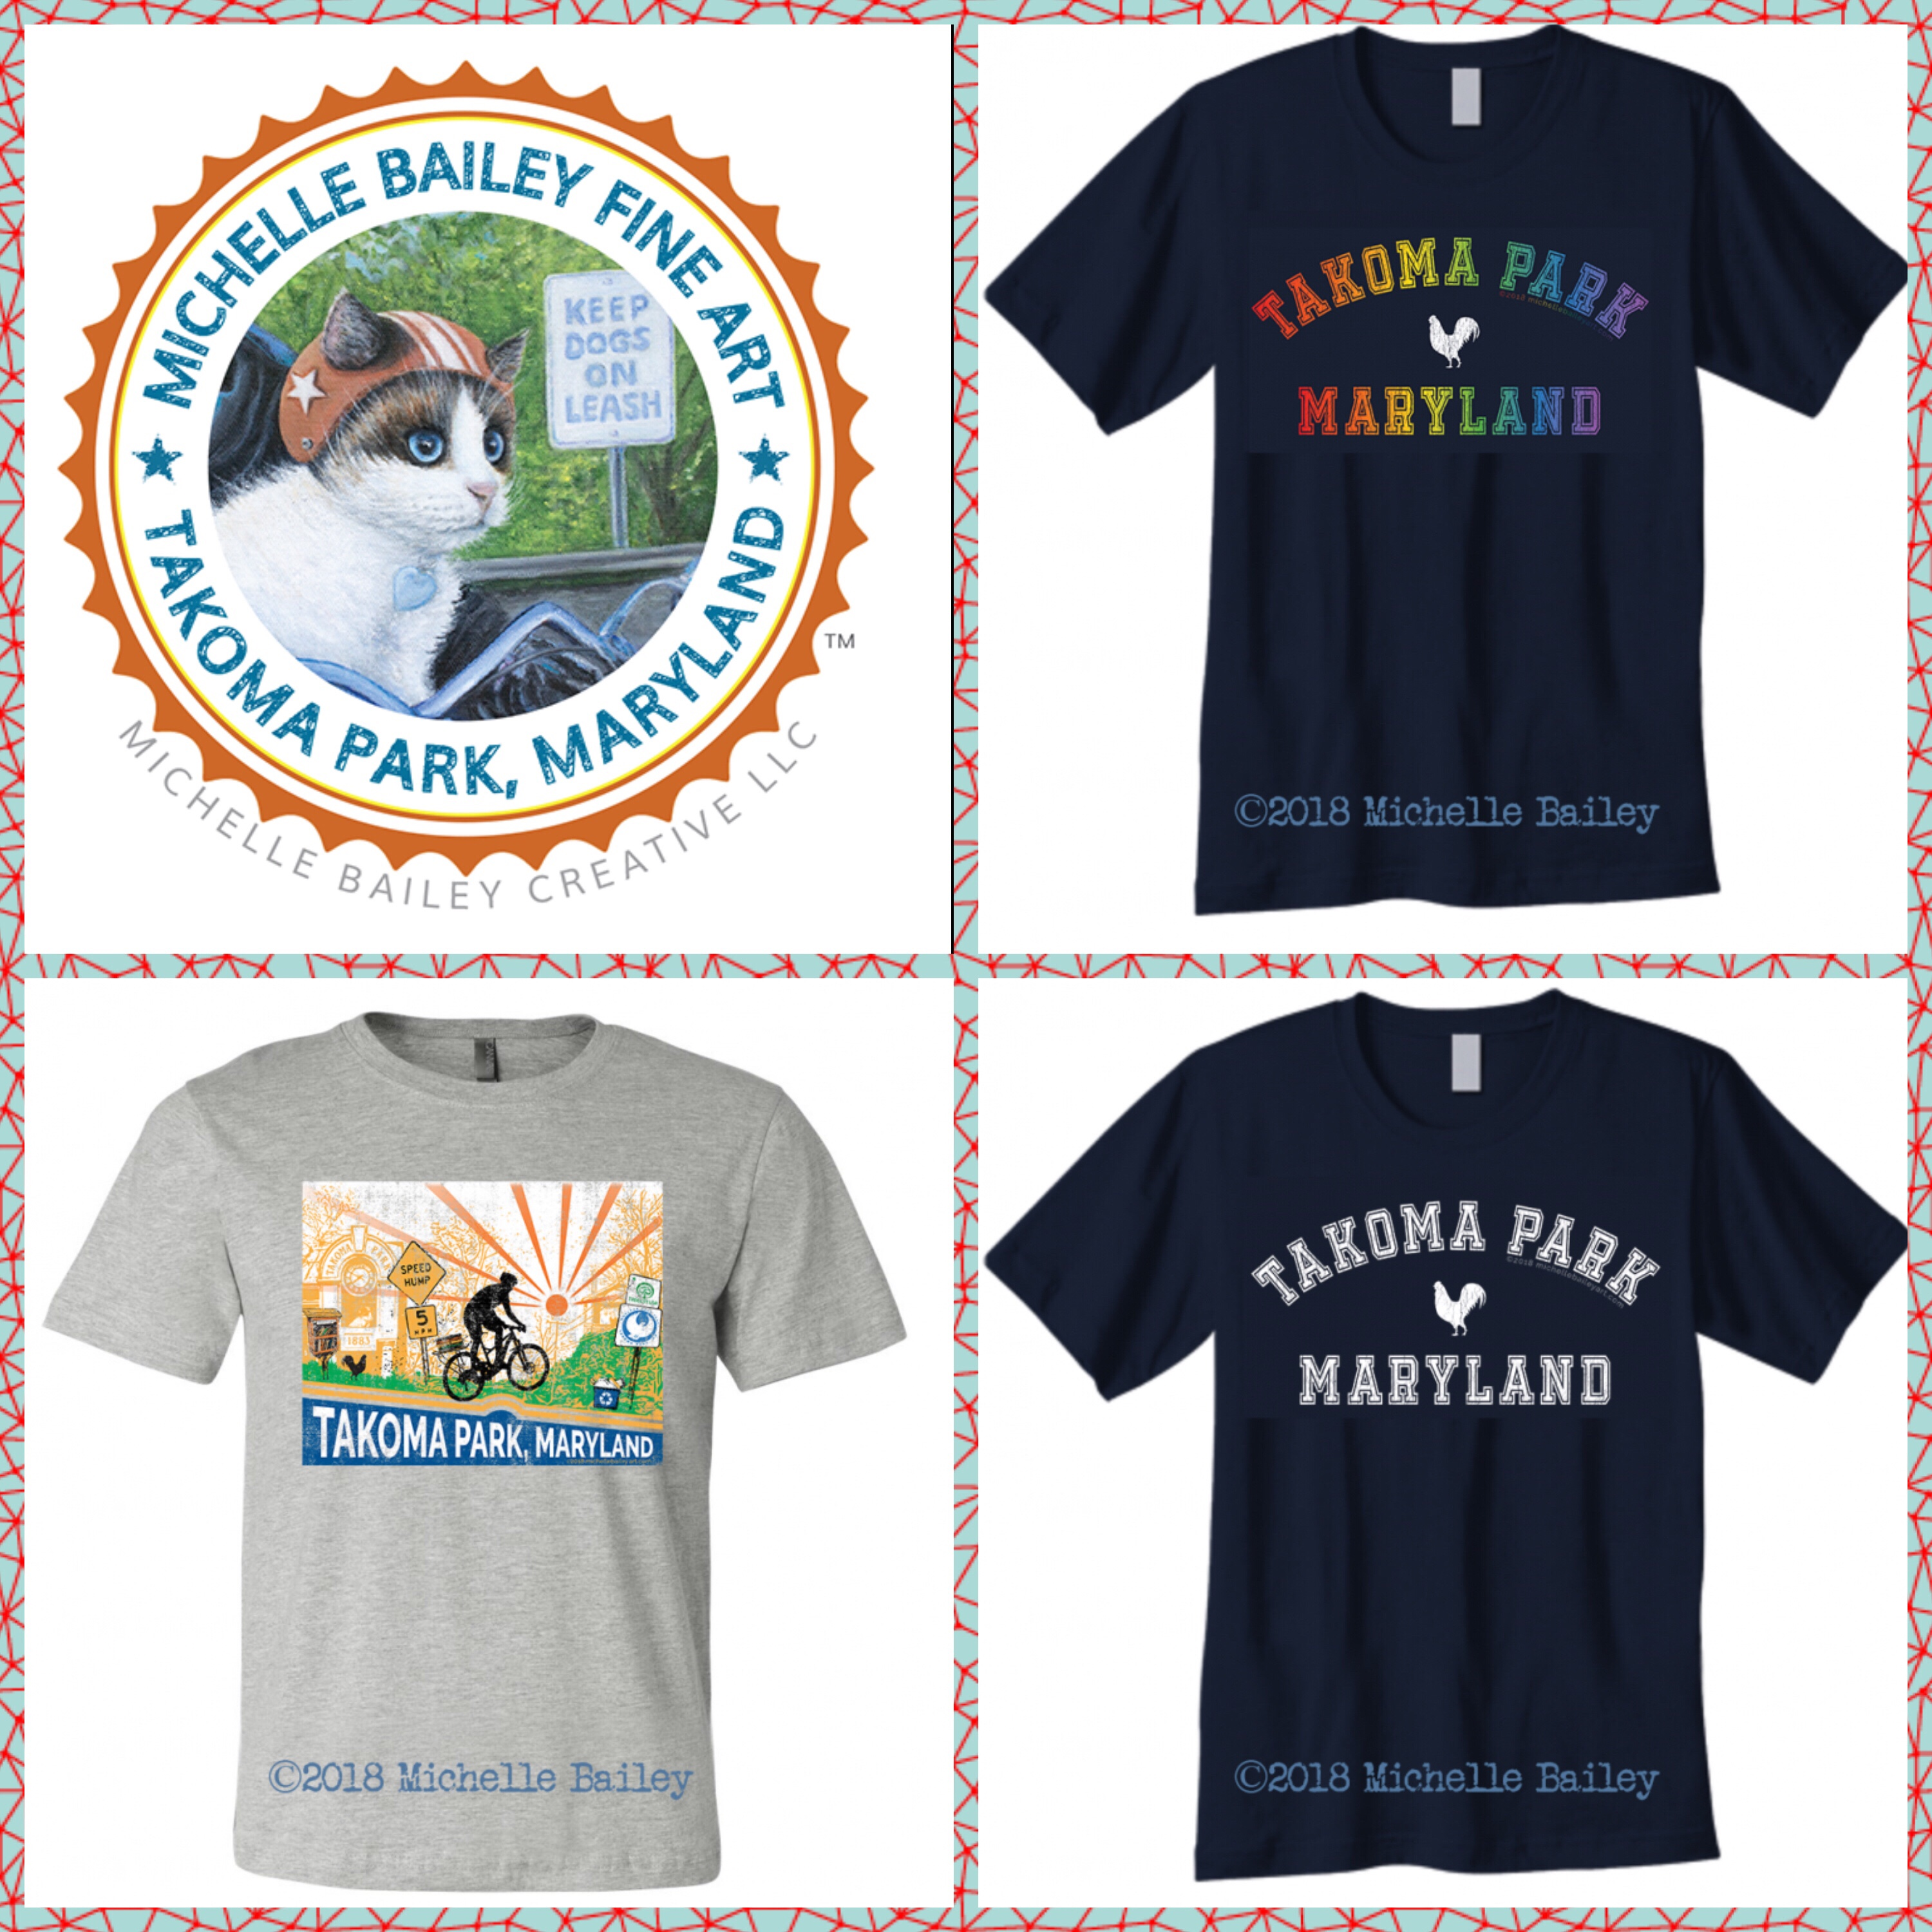 Michelle Bailey Fine Art Takoma Park Tees — 3 New Designs